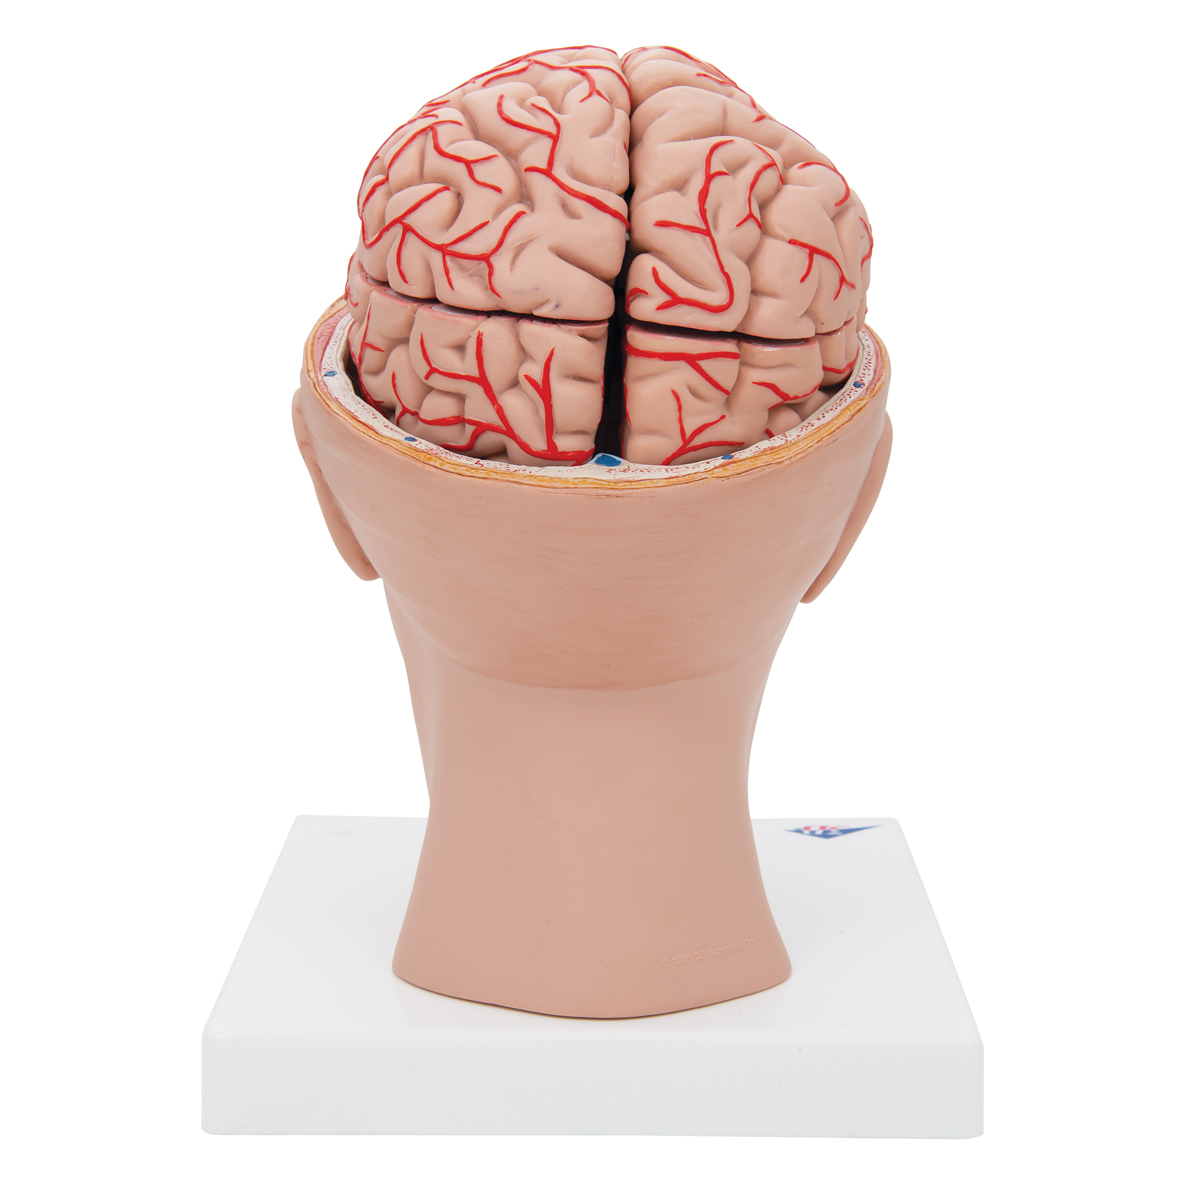 Anatomical Teaching Models Plastic Human Brain Models Brain With